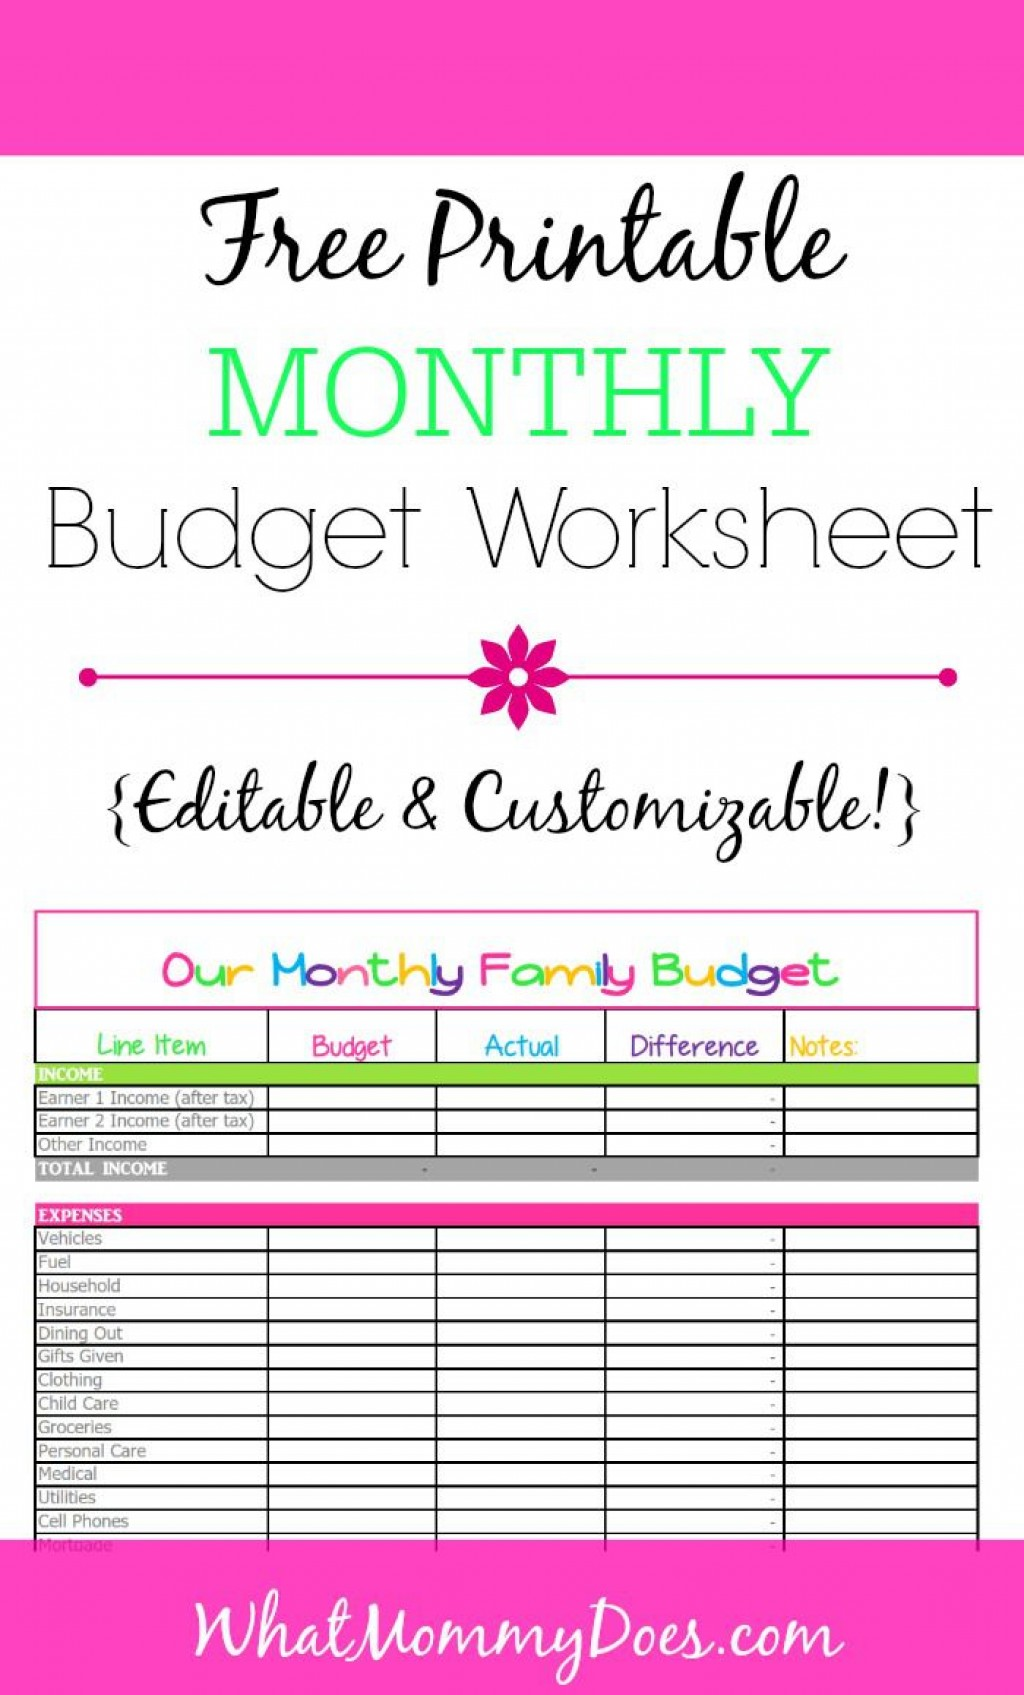 007 Fantastic Free Printable Home Budget Template Highest Clarity  Form SheetLarge